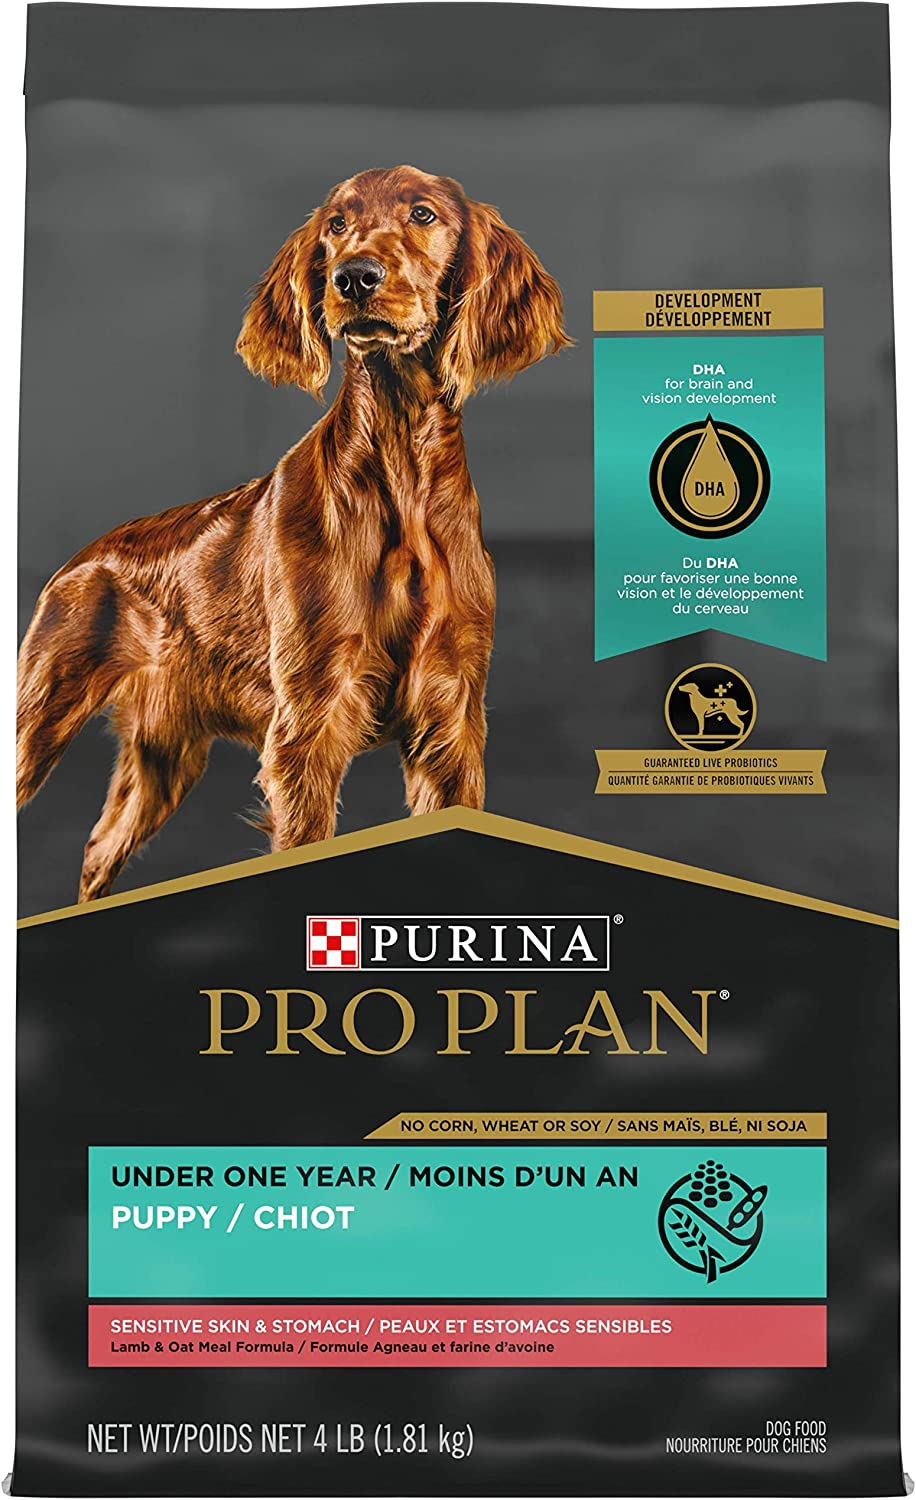 Purina Pro Plan Sensitive Skin & Sensitive Stomach Puppy Dry Dog Food (Packaging May Vary)